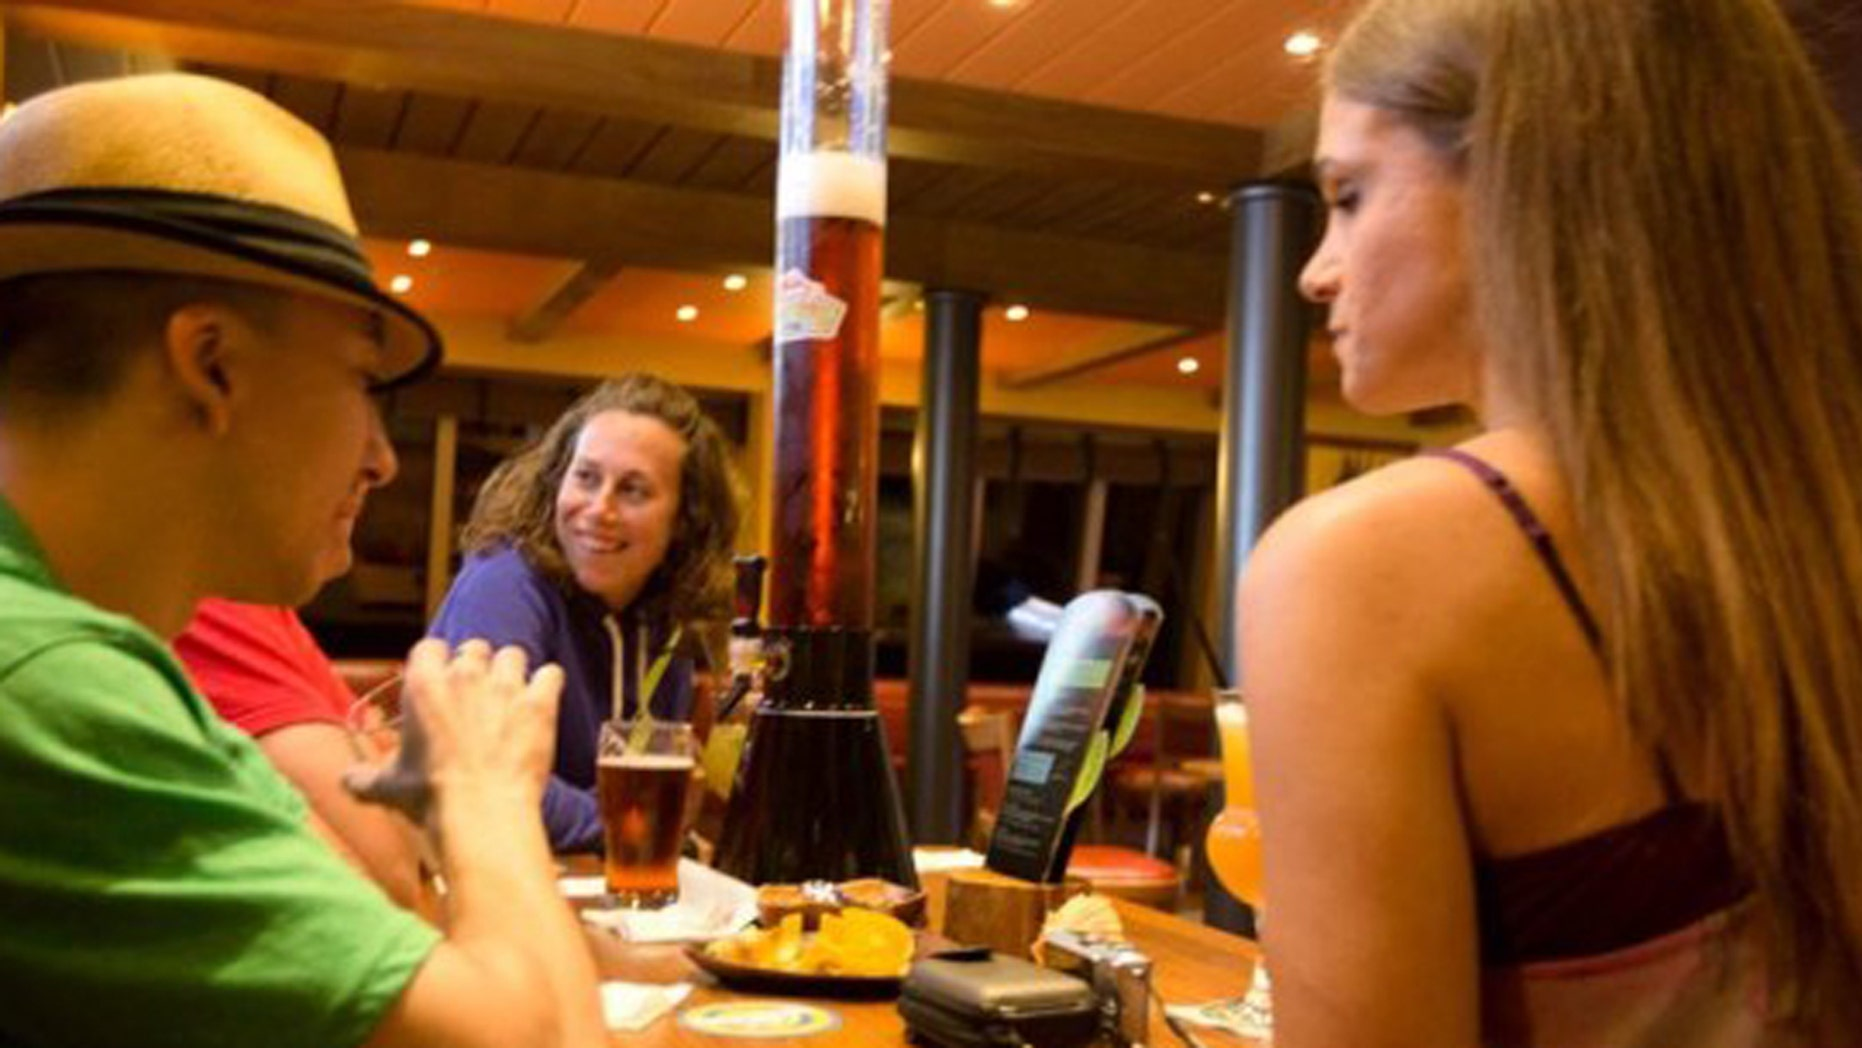 Enjoy a beer brewed right on the cruise ship.